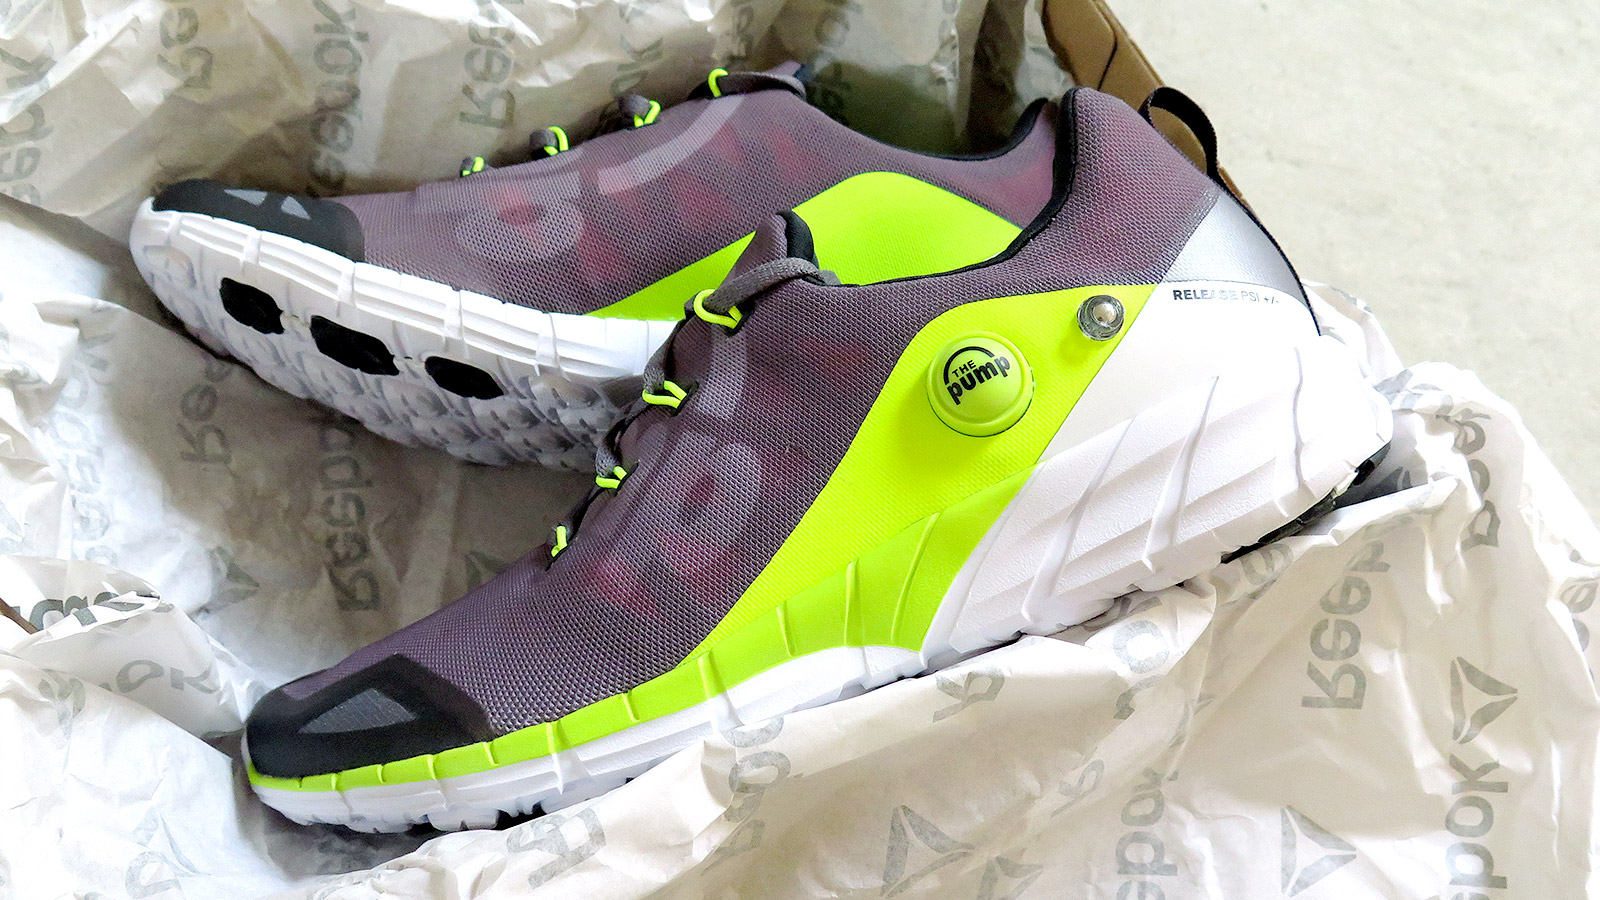 violinista pedazo envase  How I Seized the Opportunity with the Reebok ZPump Fusion 2.0